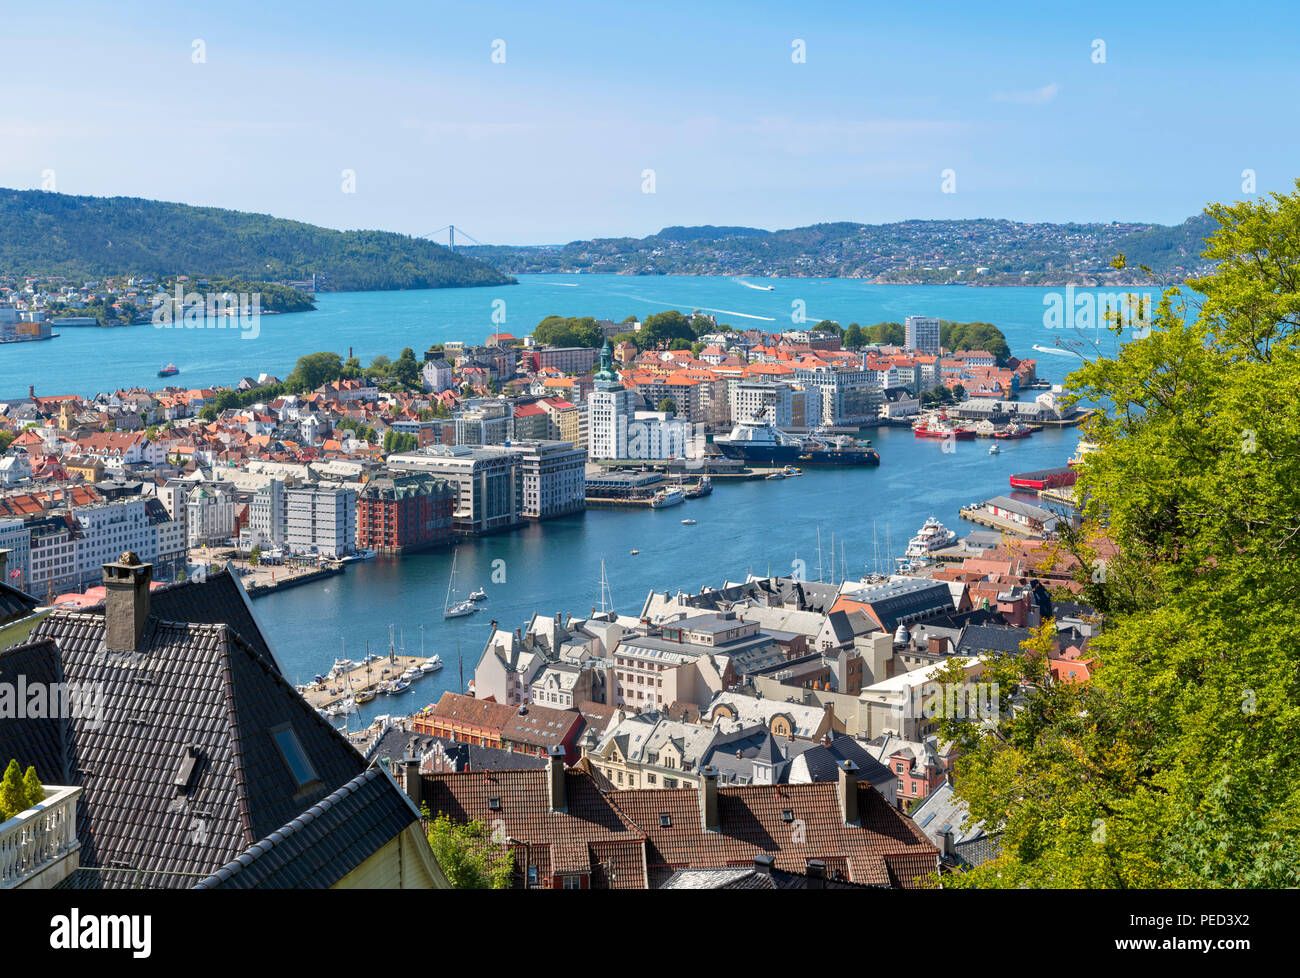 Bergen, Norway. View over the city from the slopes of Mount Fløyen, Bergen, Hordaland, Norway - Stock Image